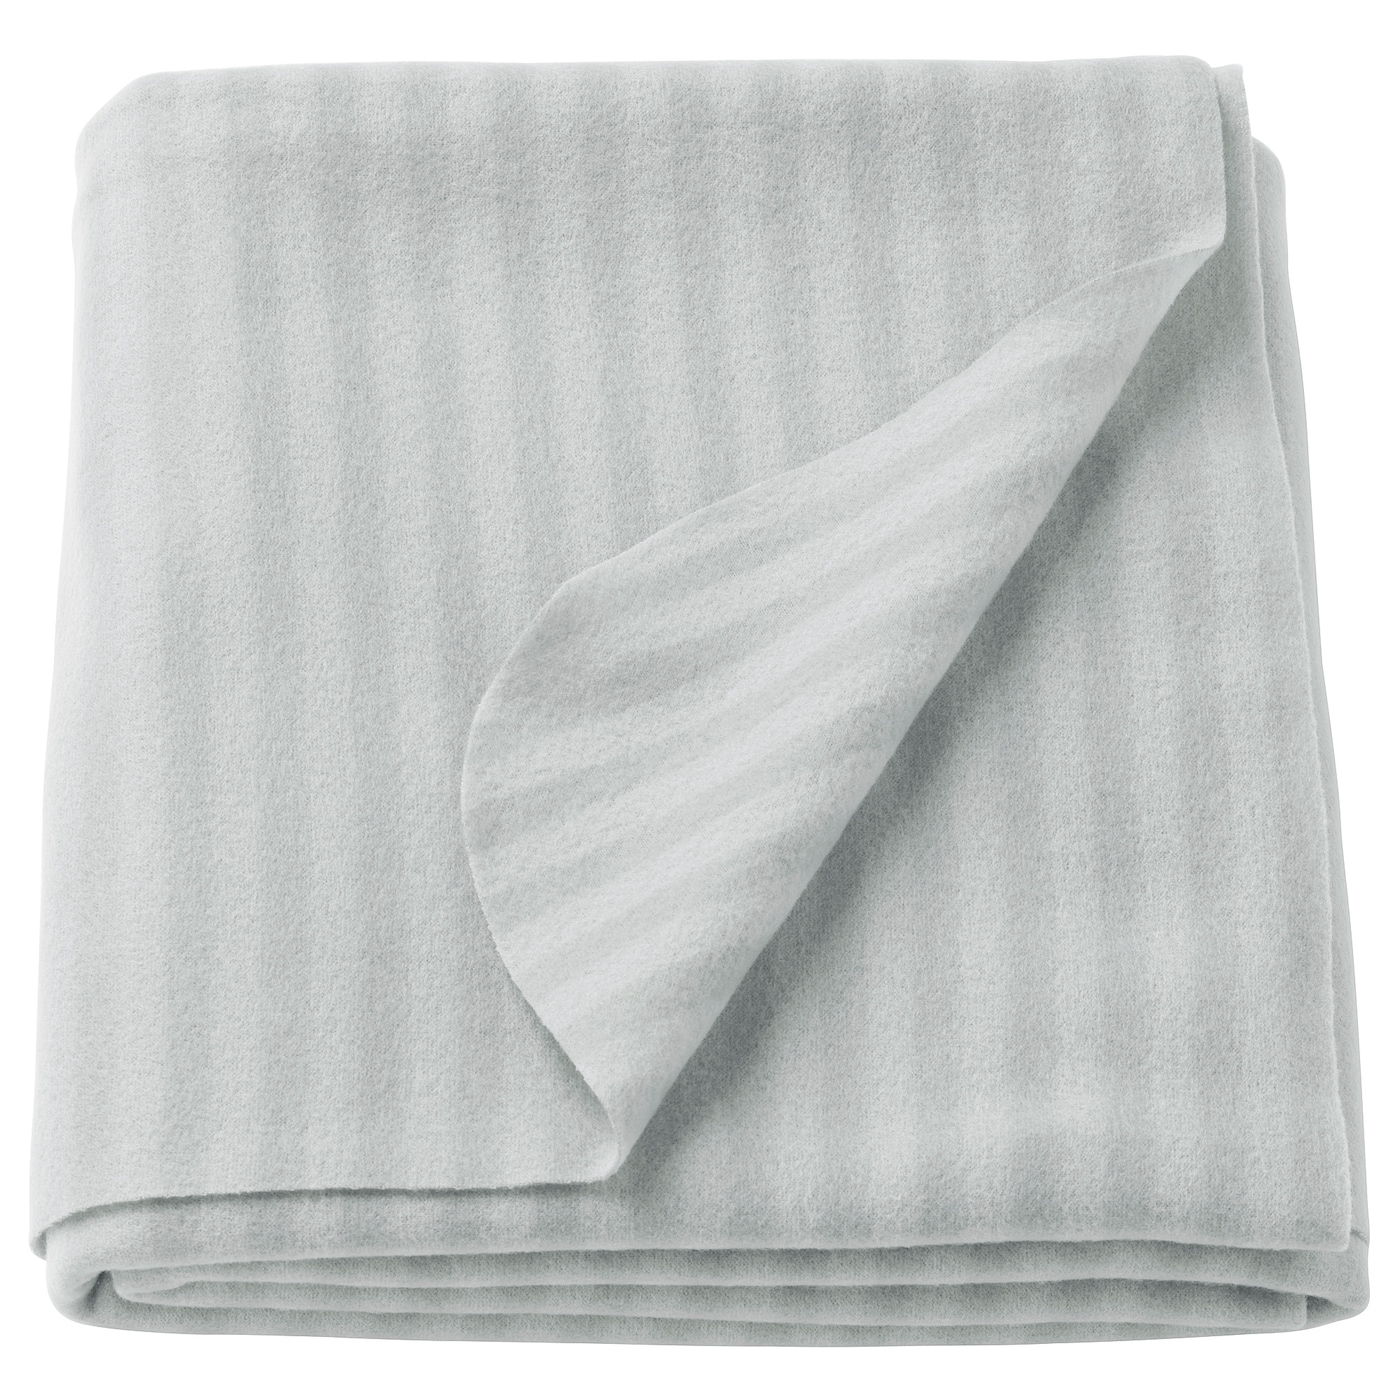 IKEA VITMOSSA throw The fleece throw feels soft against your skin and can be machine washed.